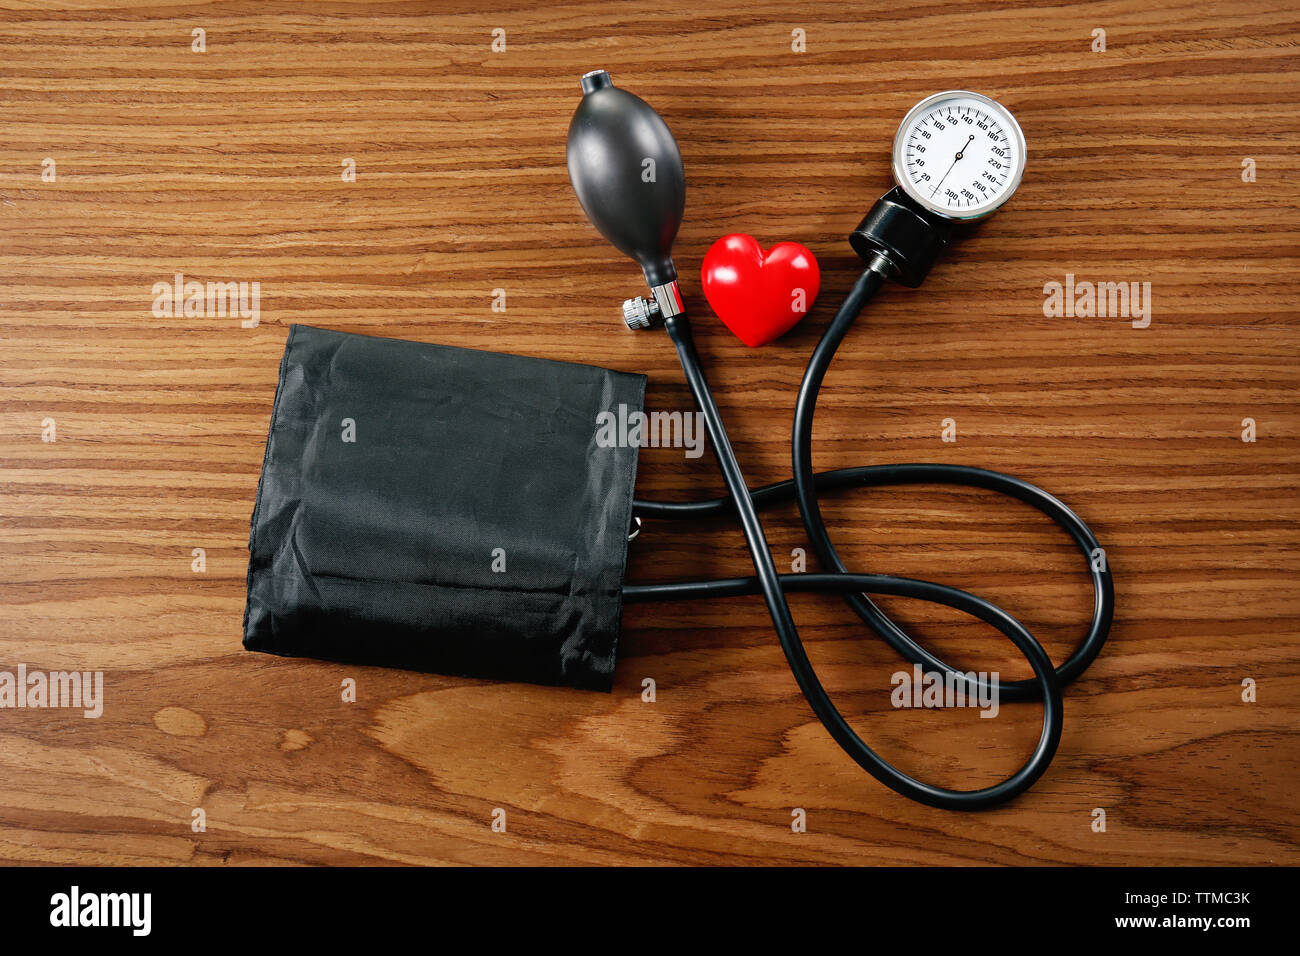 Tonometer with red heart on wooden table - Stock Image